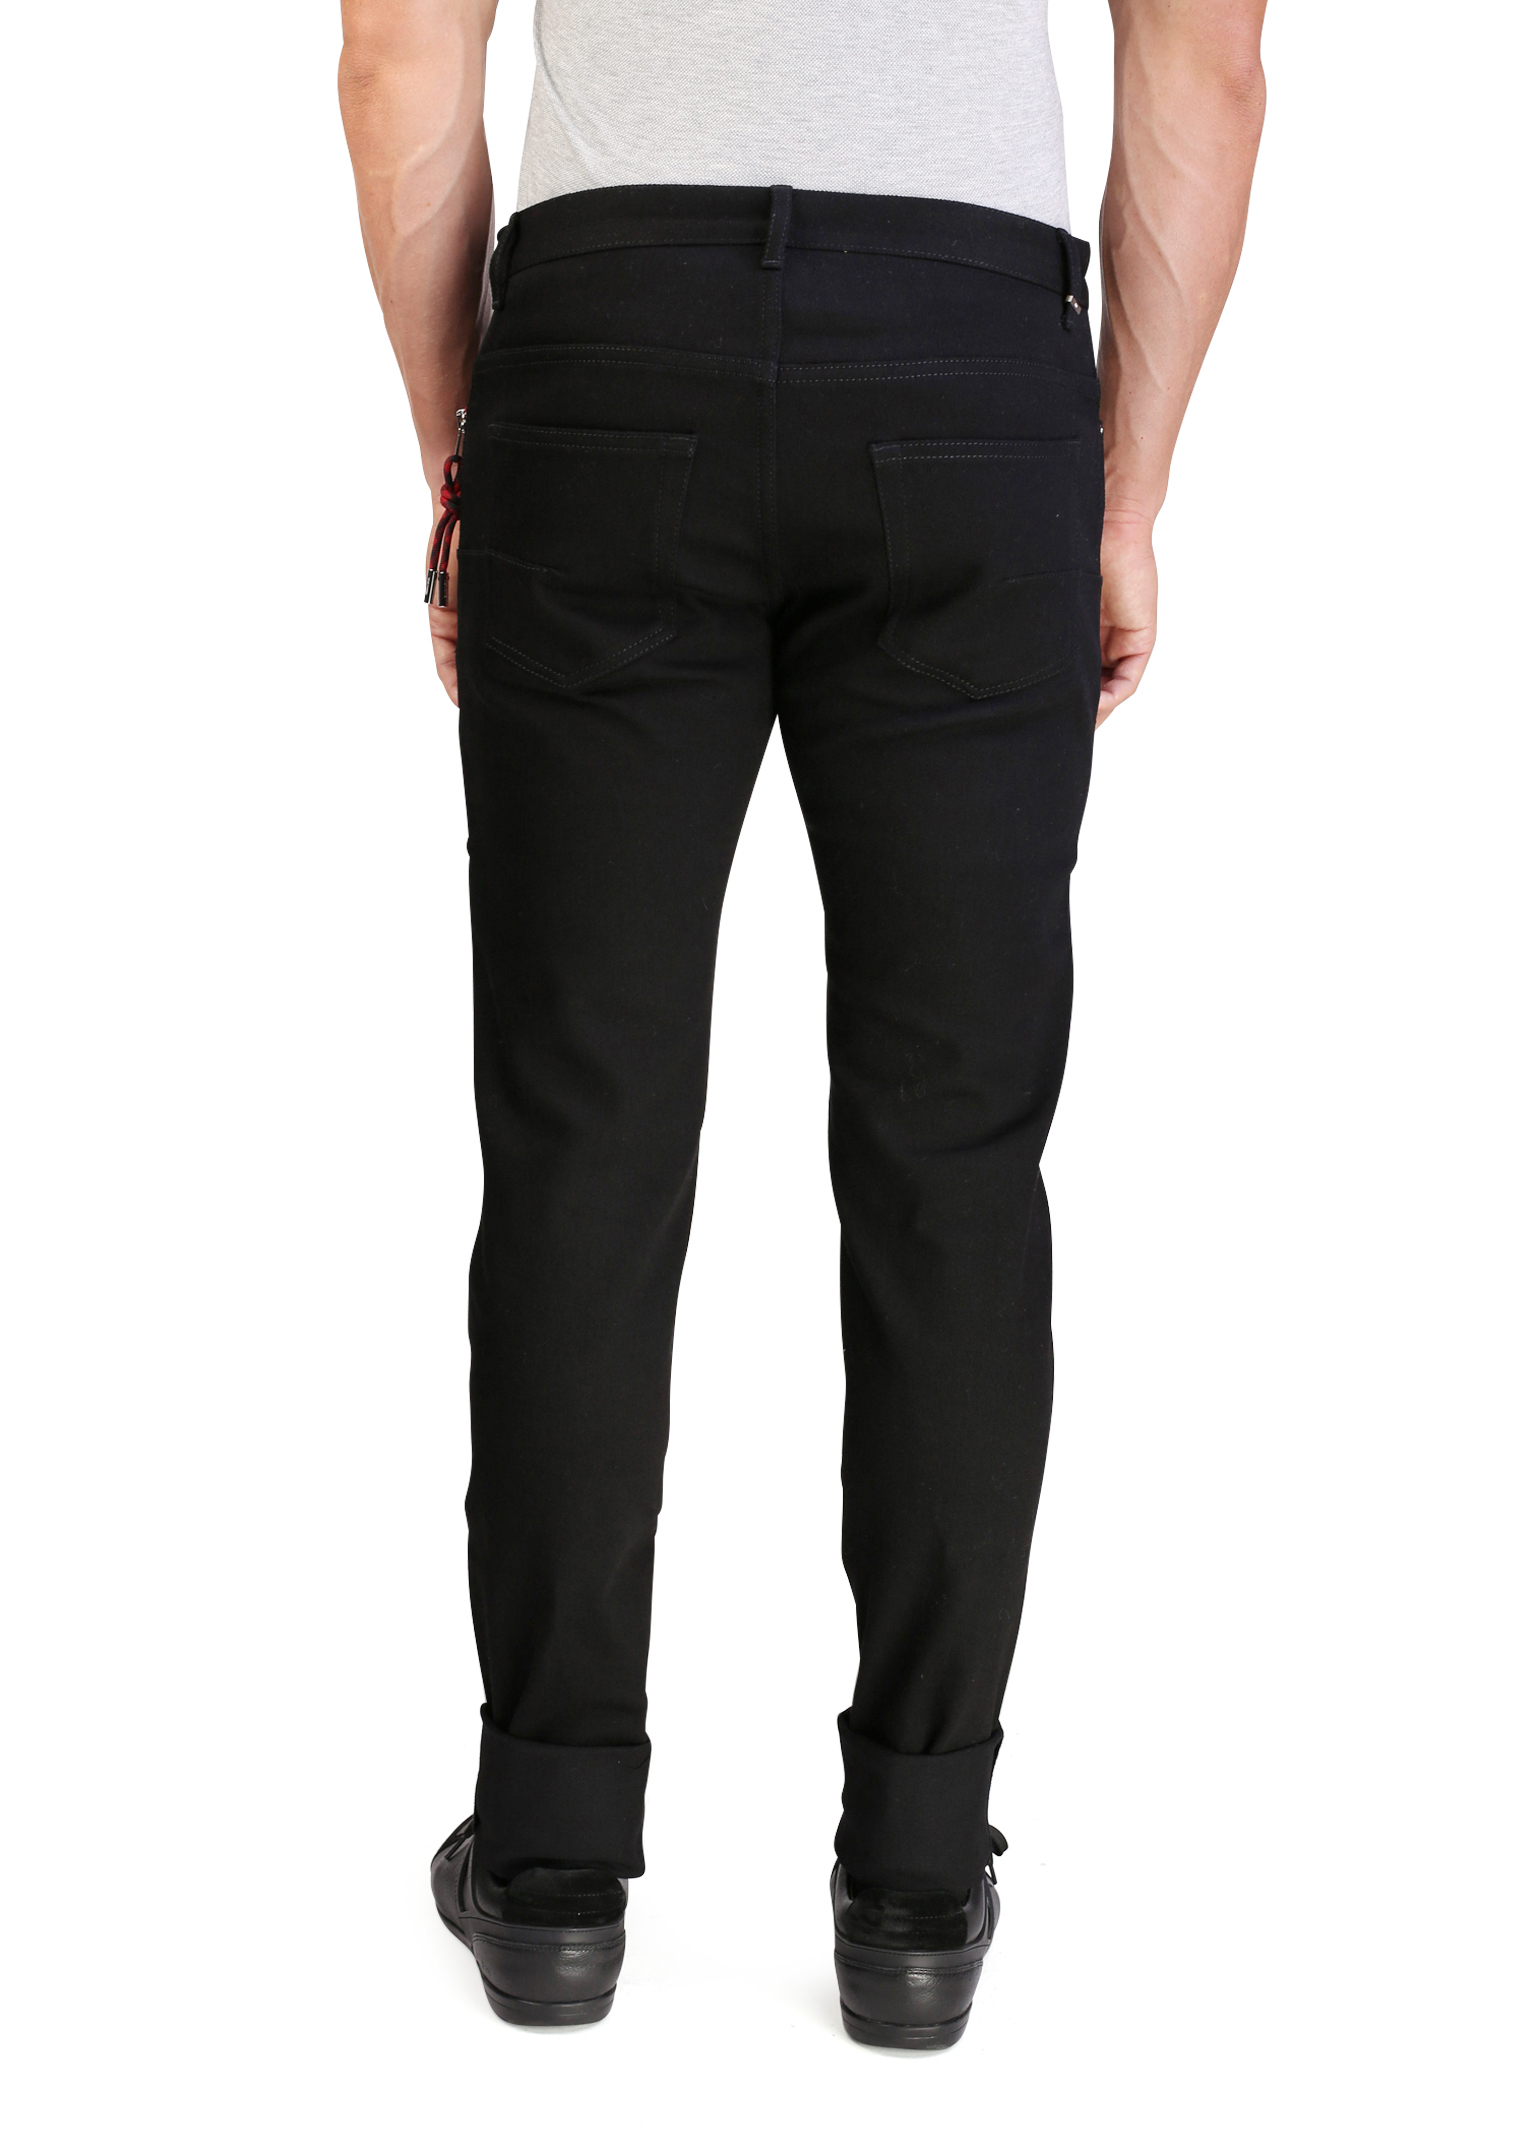 e9c0c613 Dior Homme Men's Men's Zip and Cord Stretch Cotton Jeans Black